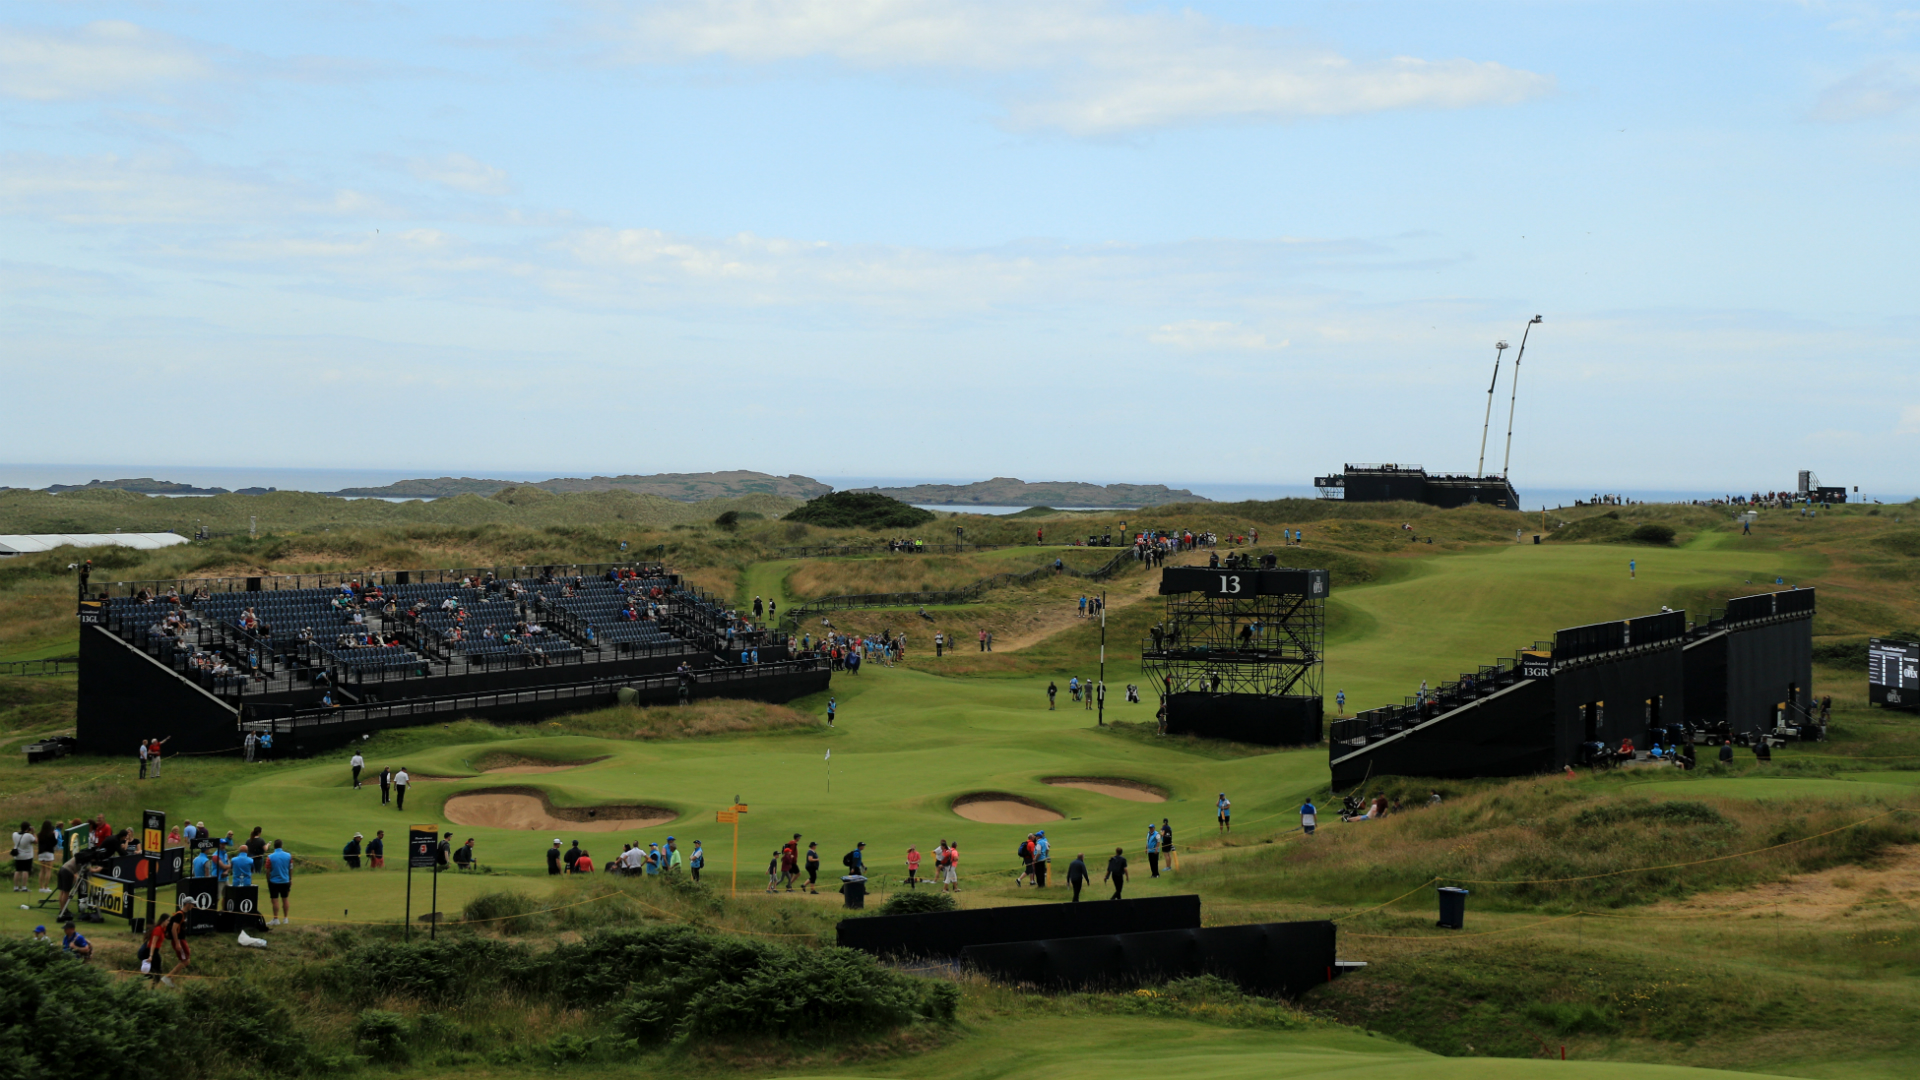 British Open 2019: Sunday tee times moved up due to adverse weather threat at Portrush